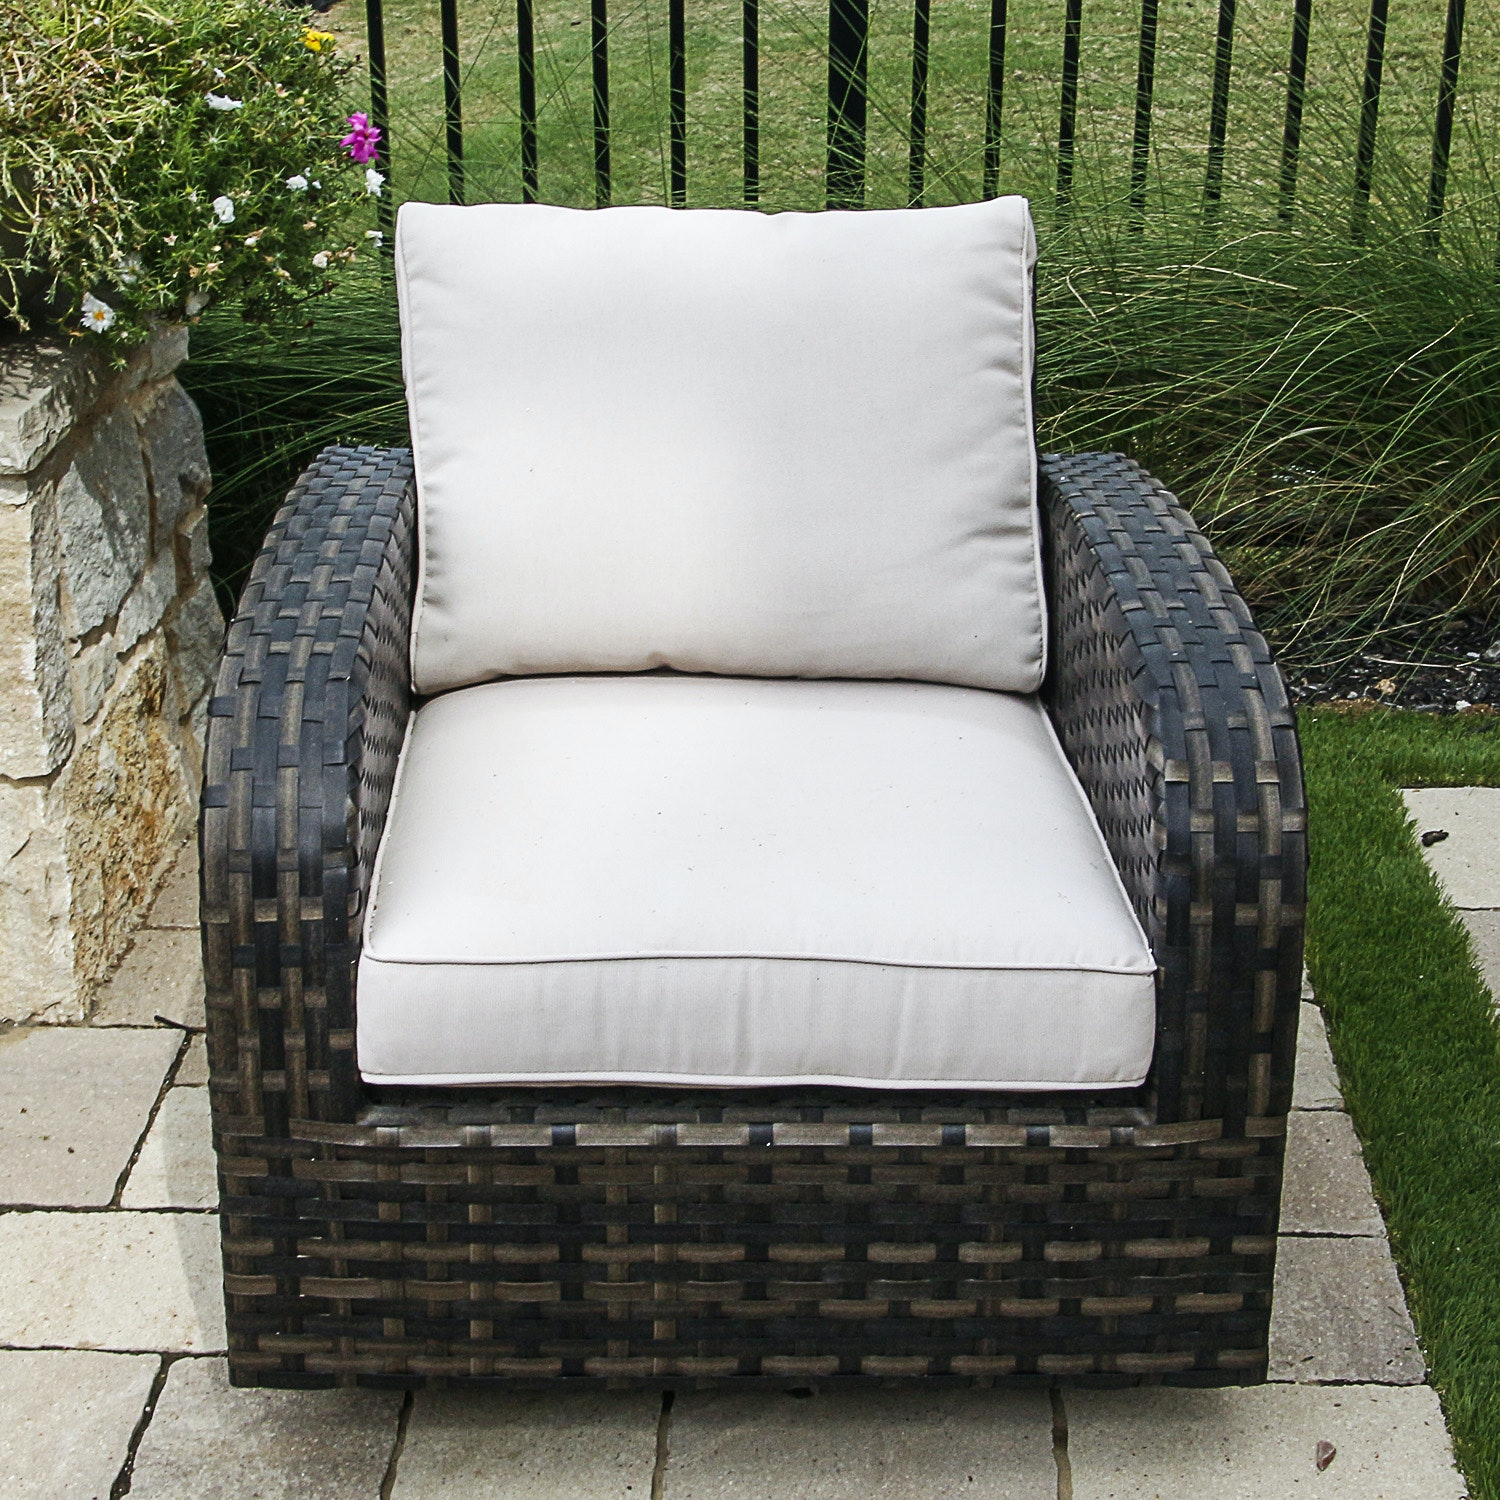 Faux Wicker Patio Chair with Cream Upholstered Cushions